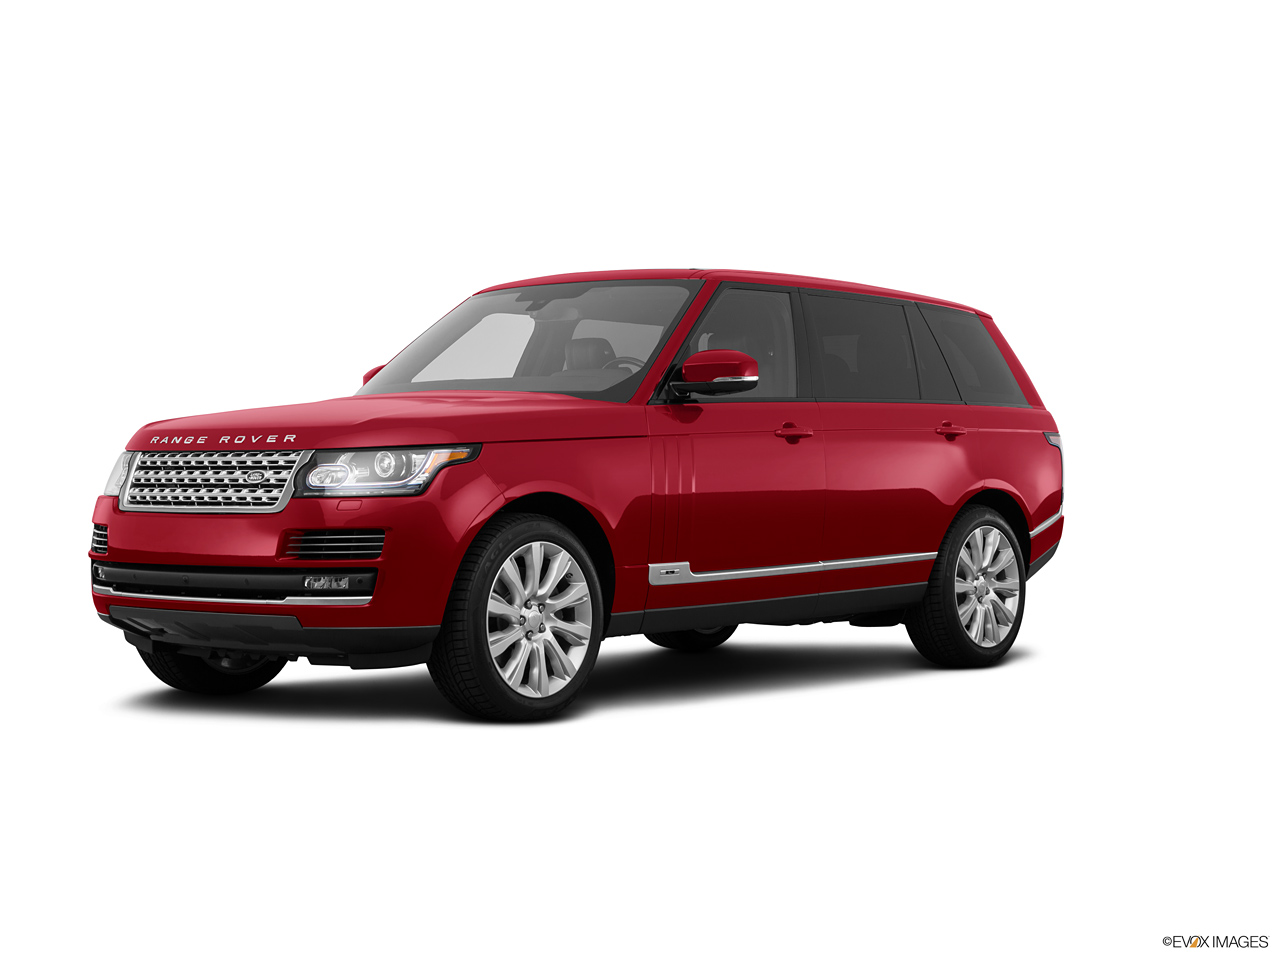 Land Rover Range Rover 2017 5 0l Sc Vogue Se Lwb 510 Ps In Oman New Car Prices Specs Reviews